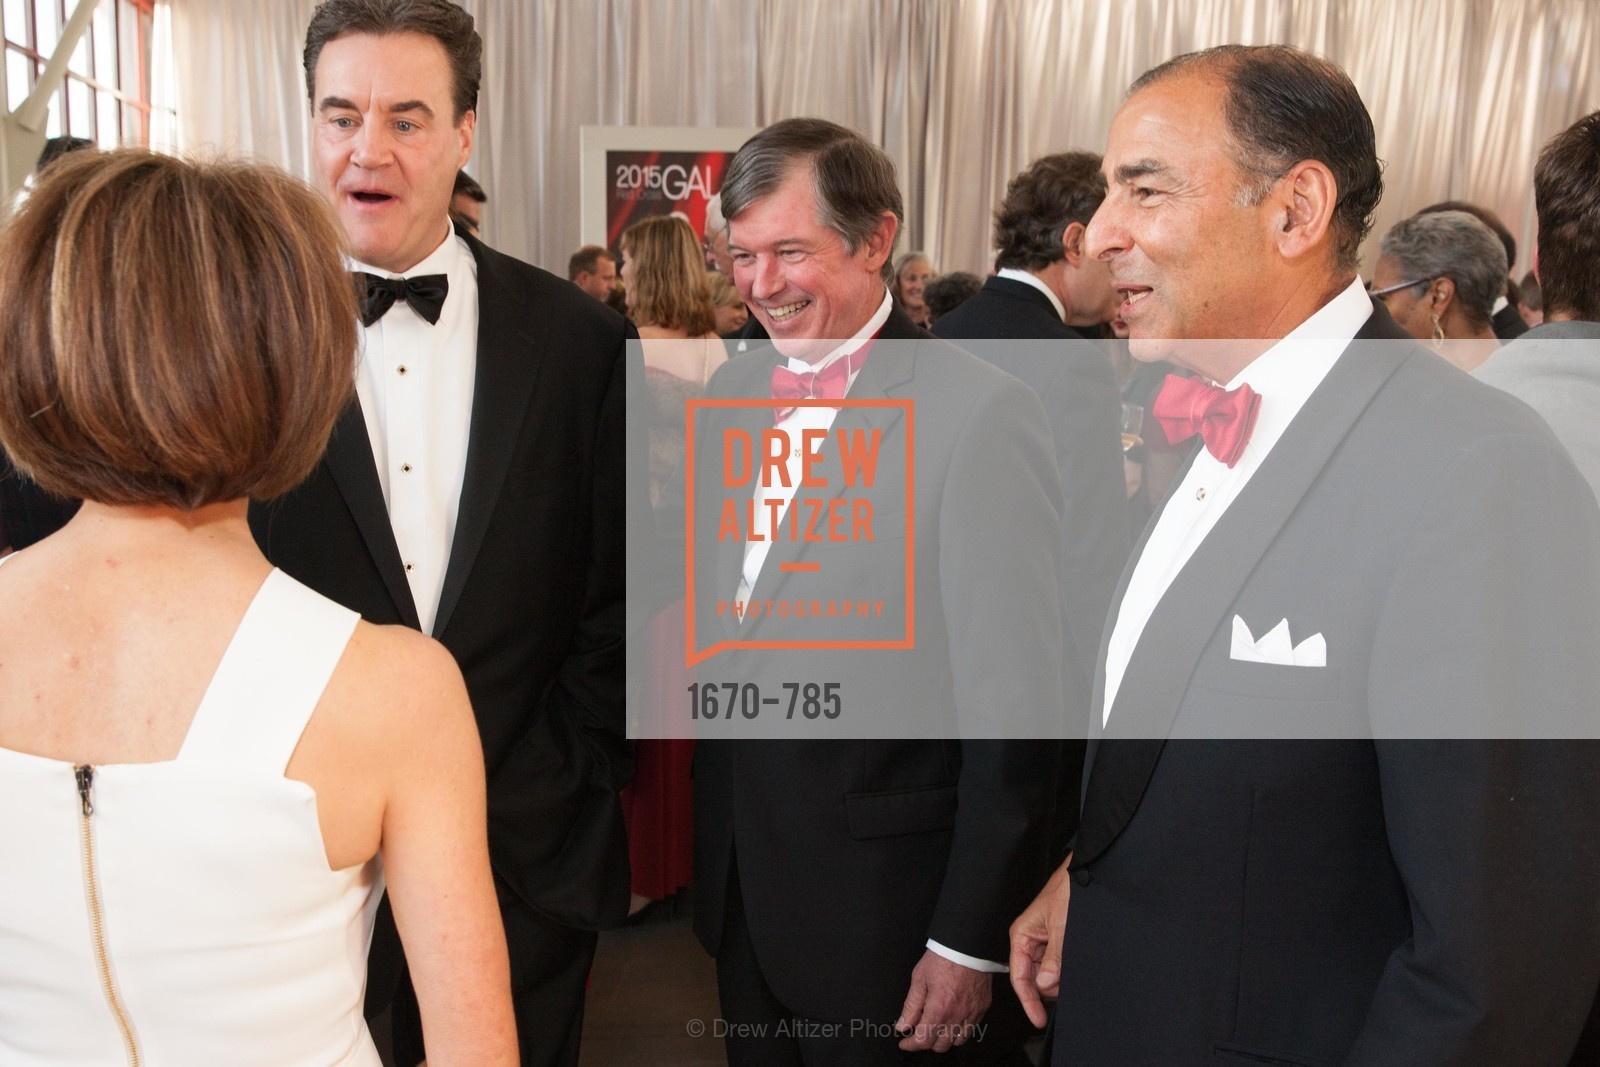 Teresa Briggs, Jim Messemer, Anthony Early, Alexander Mehran, 2015 RED CROSS Gala, US, April 12th, 2015,Drew Altizer, Drew Altizer Photography, full-service agency, private events, San Francisco photographer, photographer california